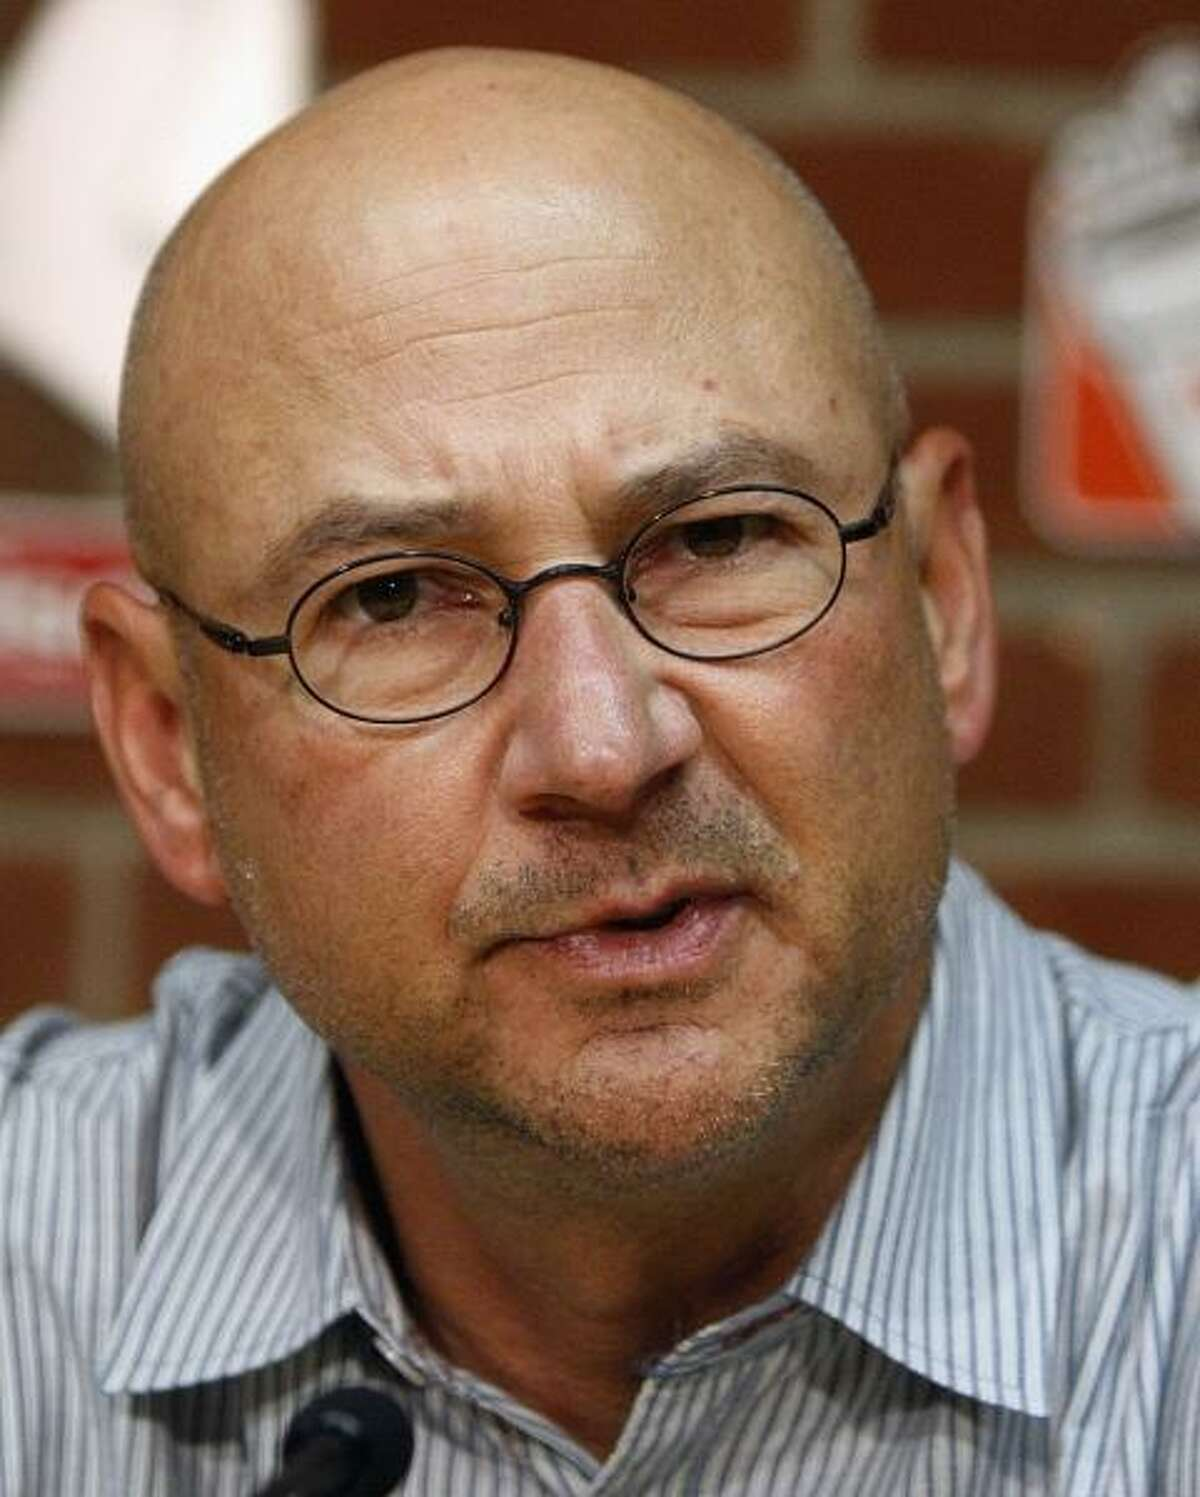 Former Boston Red Sox baseball manager Terry Francona speaks during a news conference, Friday, Sept. 30, 2011, in Boston. The Red Sox announced they will not pick up the option on Francona's contract in the wake of the team's September collapse. (AP Photo/Bizuayehu Tesfaye)